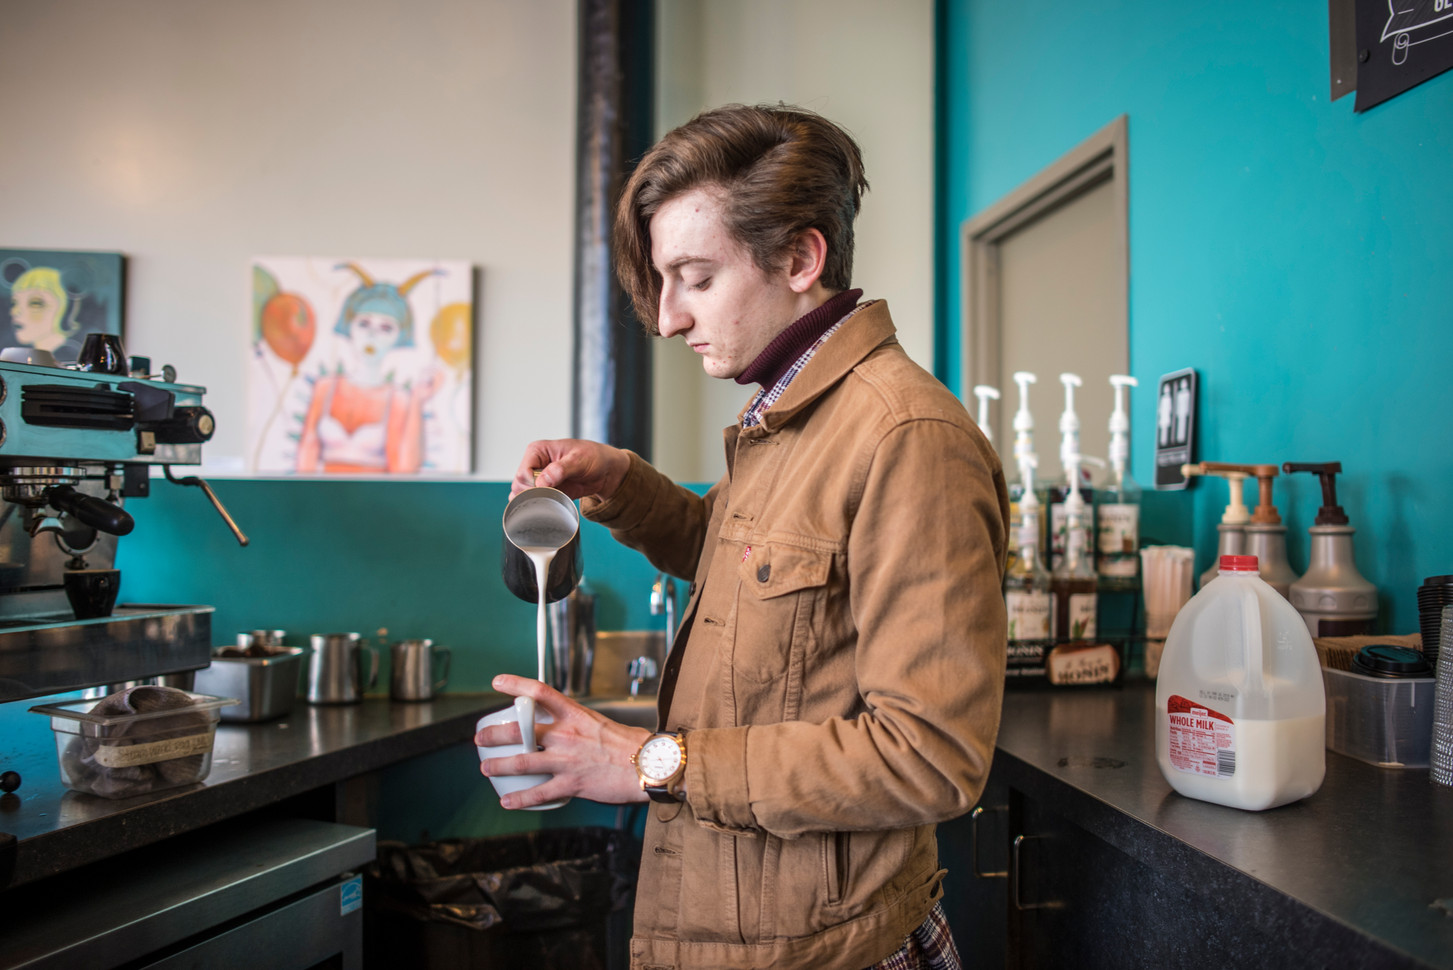 Zach Swelbar making a coffee at True West Coffee in Hamilton, Ohio. Swelbar has worked there, part time, for the past two years while also persuing music as the lead vocalist in Circle It.